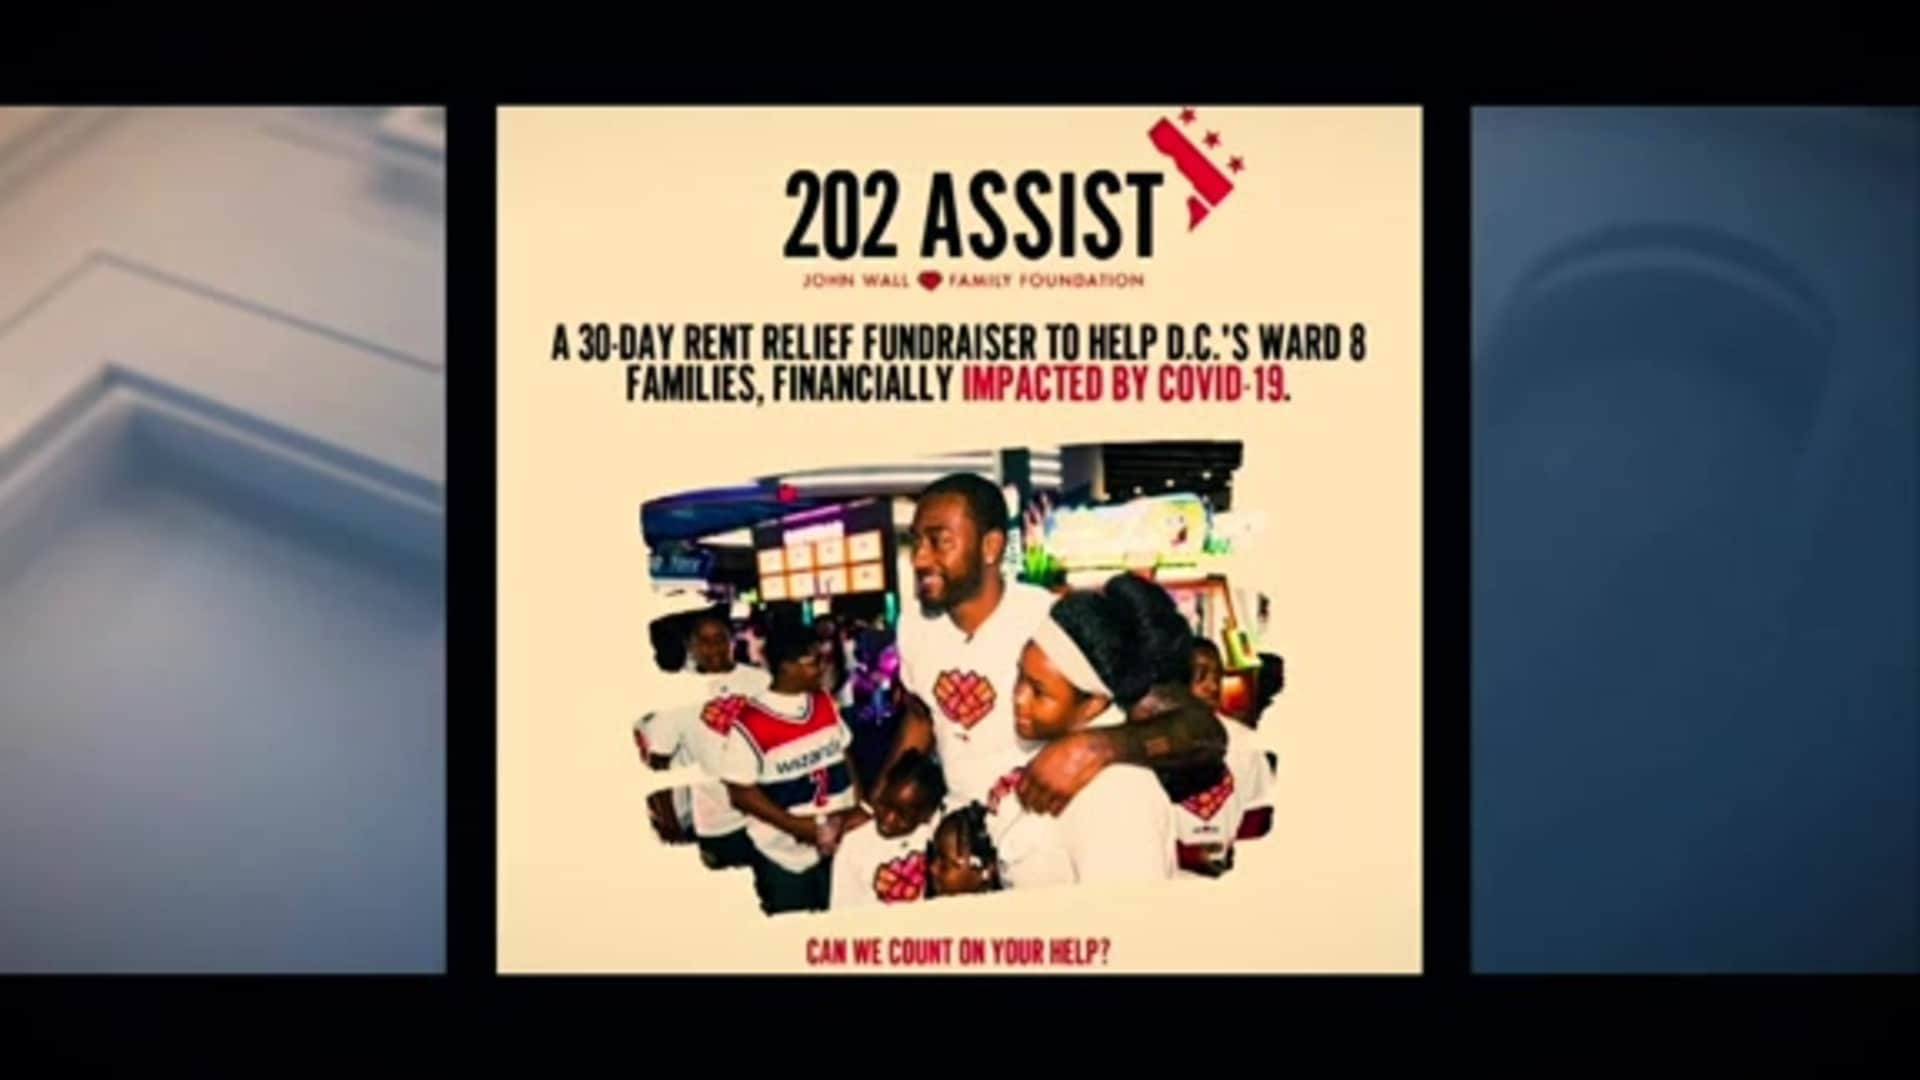 John Wall's 10 years in D.C. culminate in 202 Assist - 6/18/20